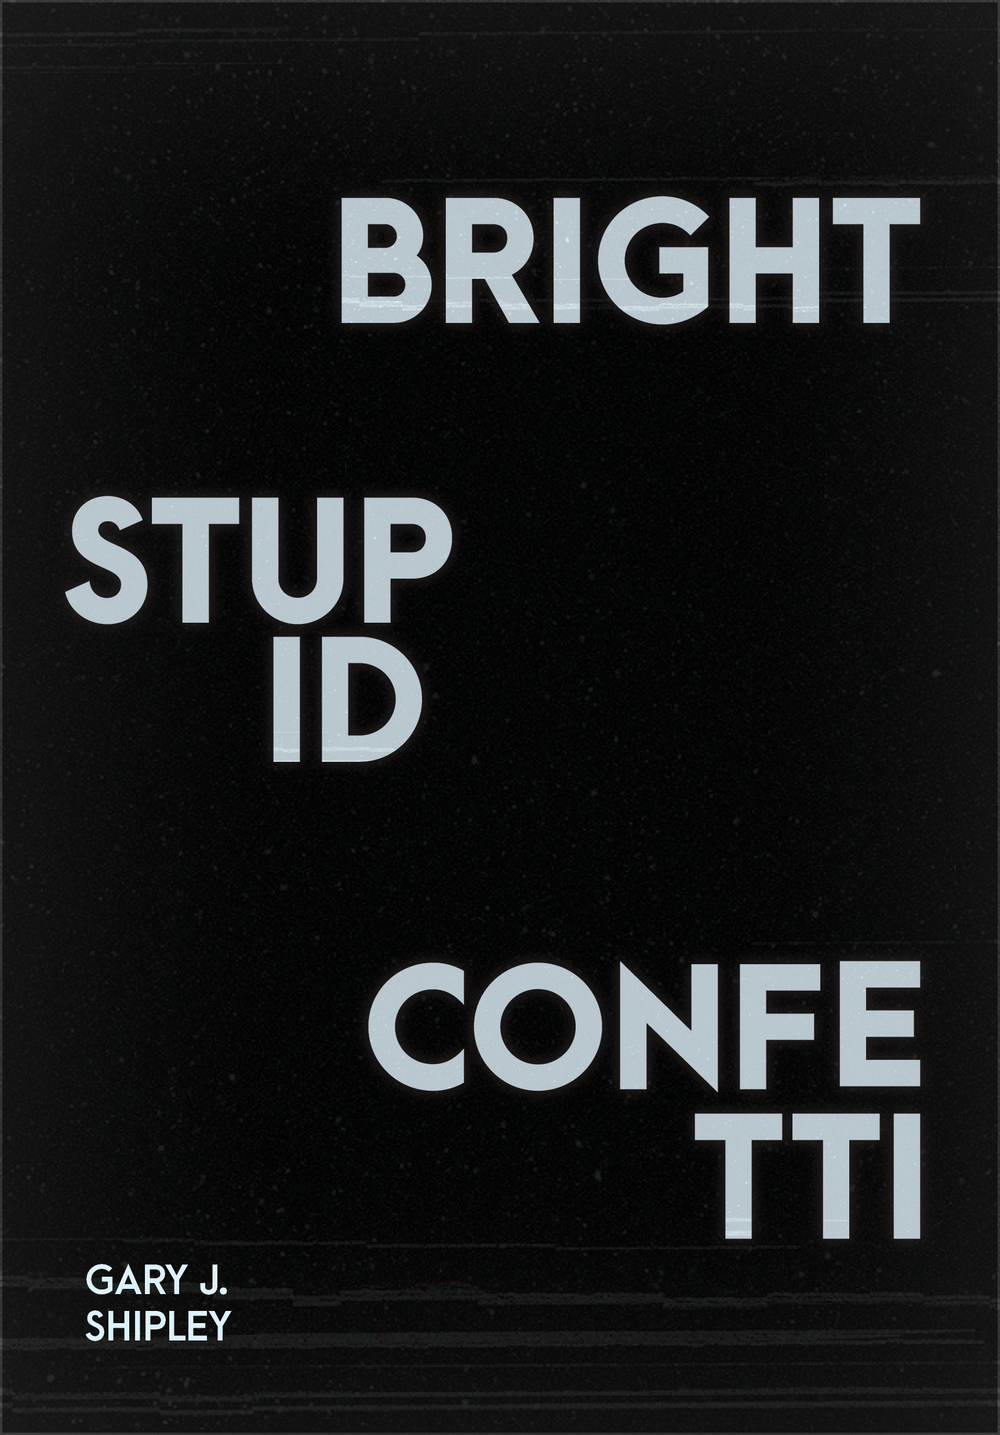 Bright Stupid Confetti by Gary J. Shipley [OUT NOW!]